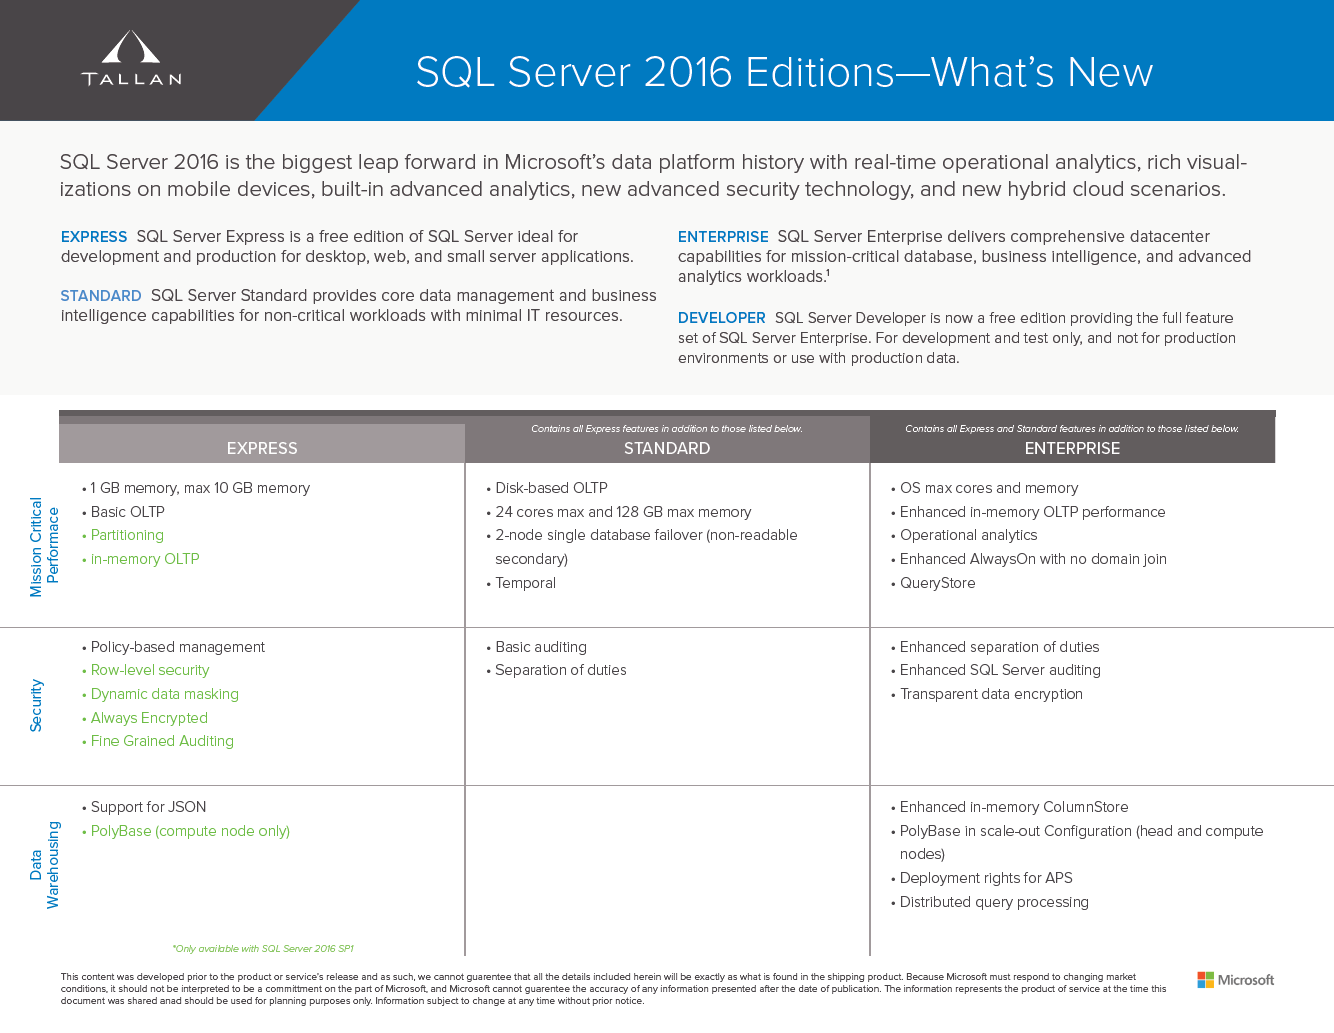 SQL Server 2016 Additions and Improvements